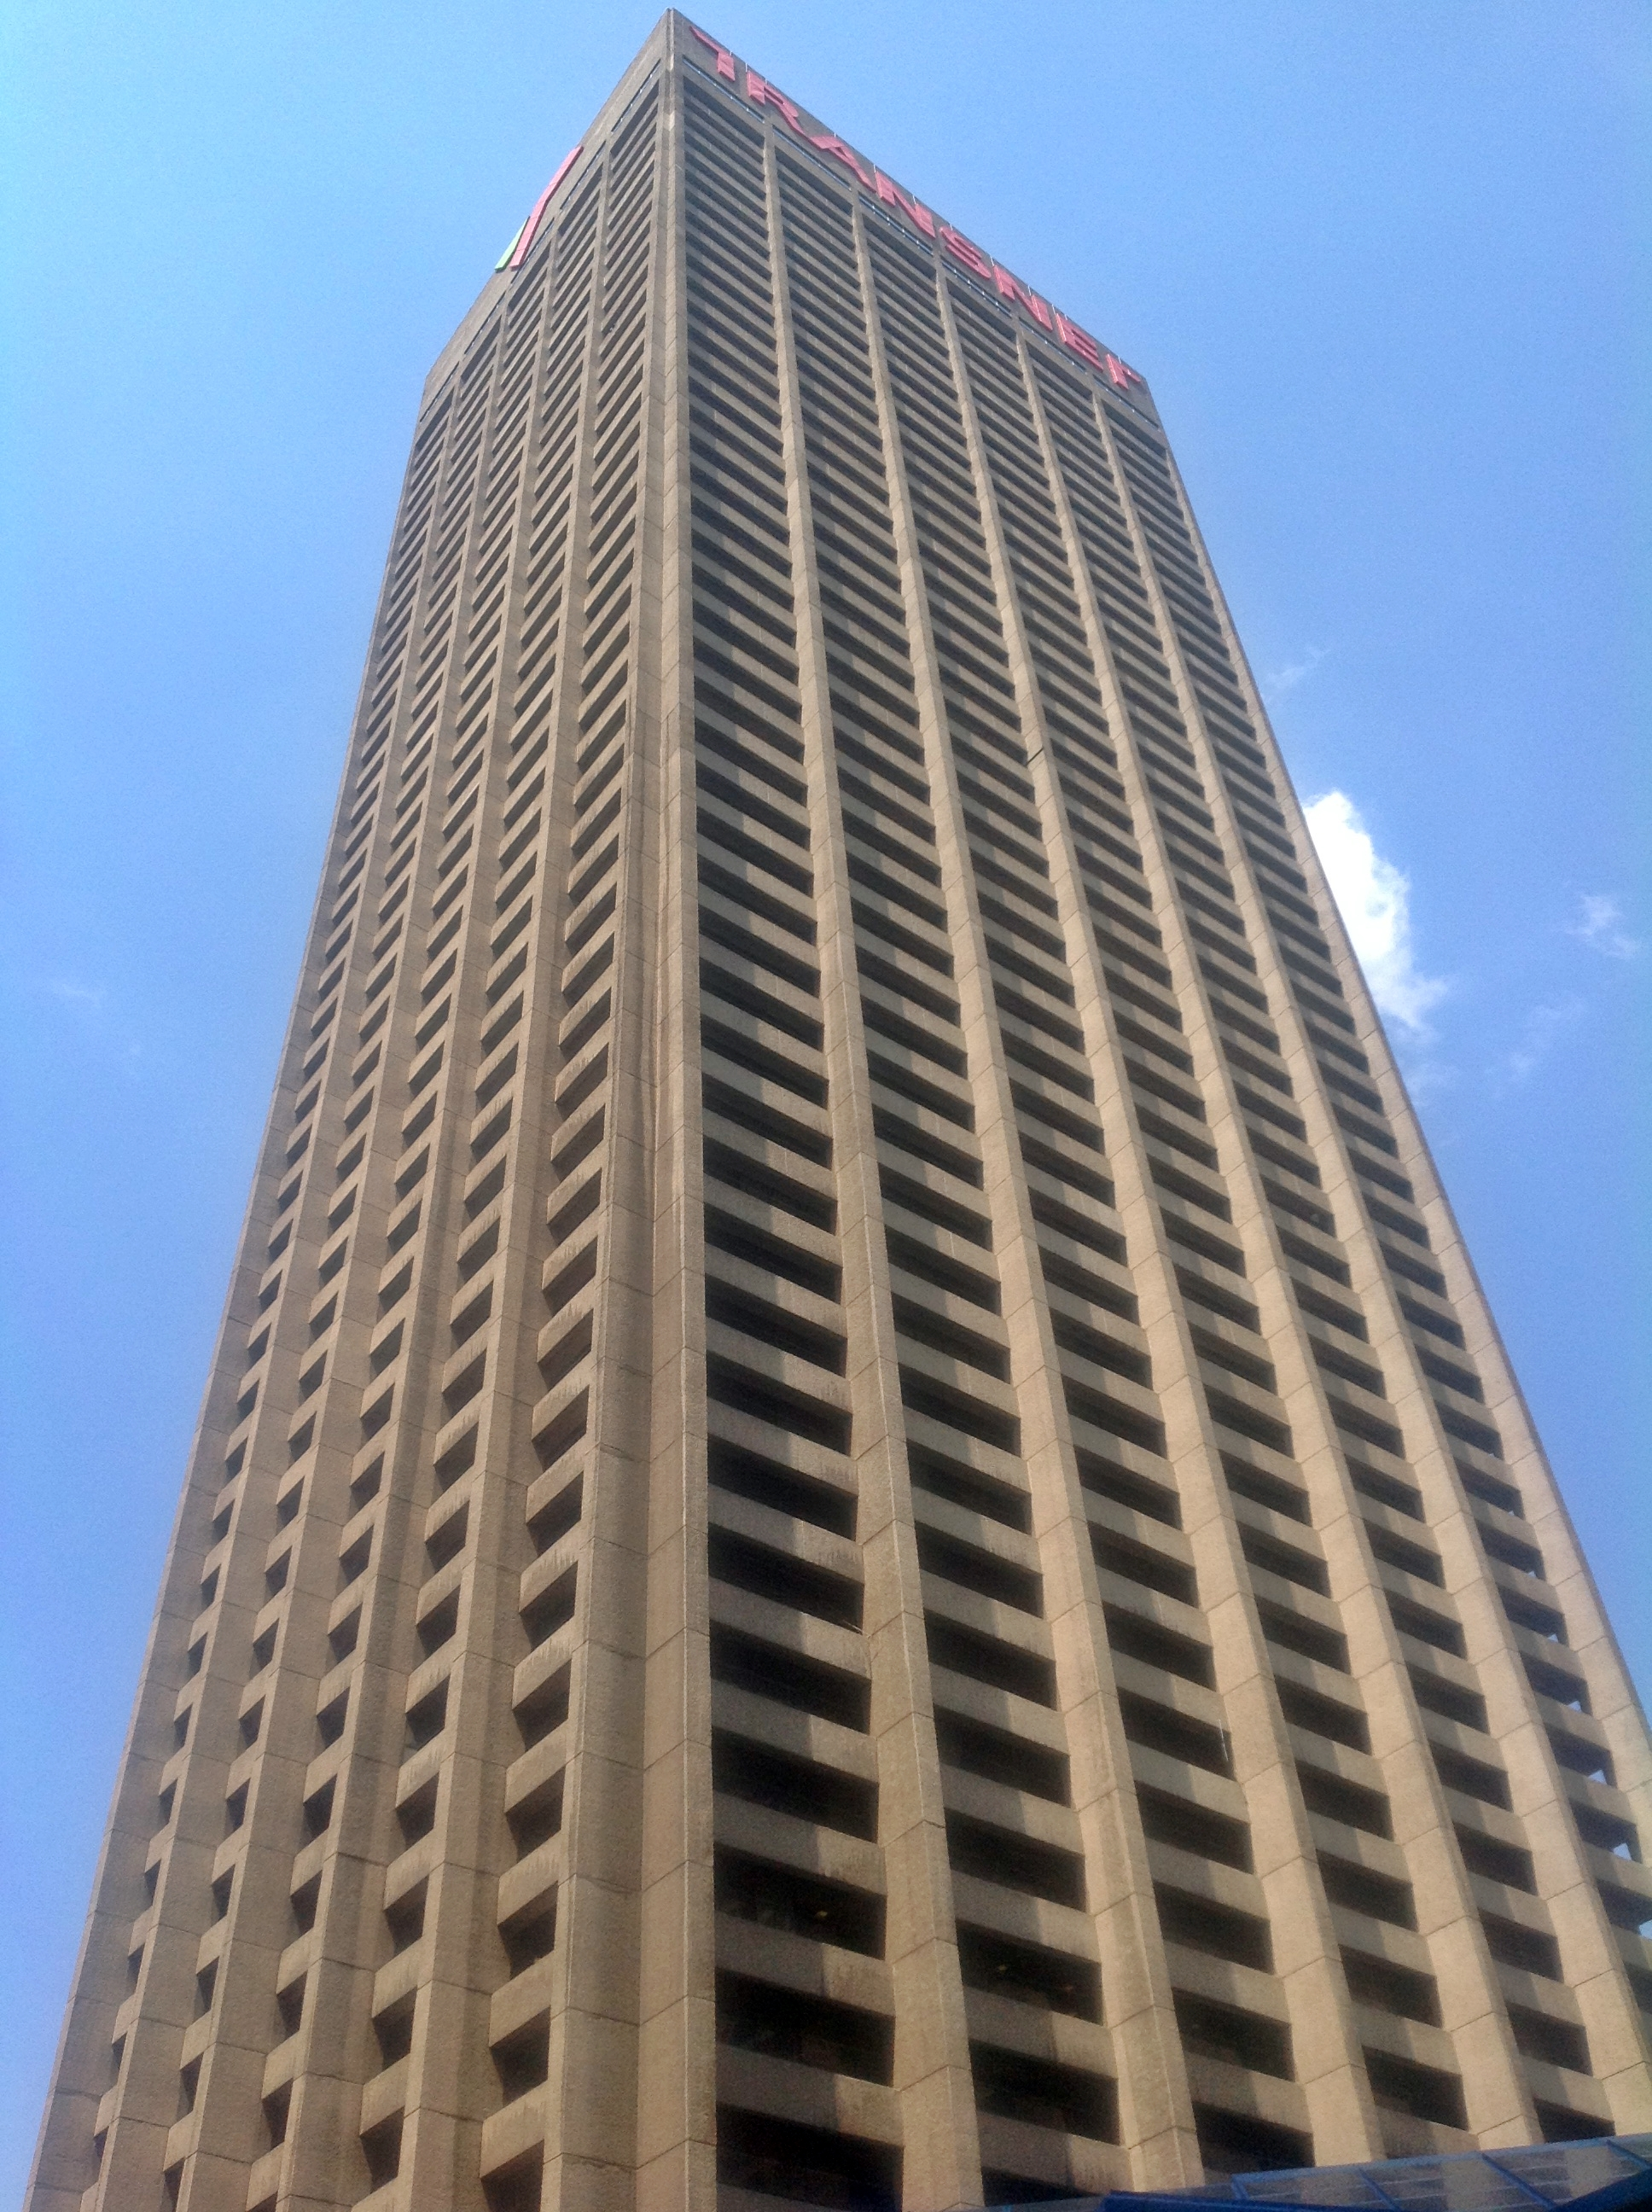 Depiction of Carlton Centre Office Tower